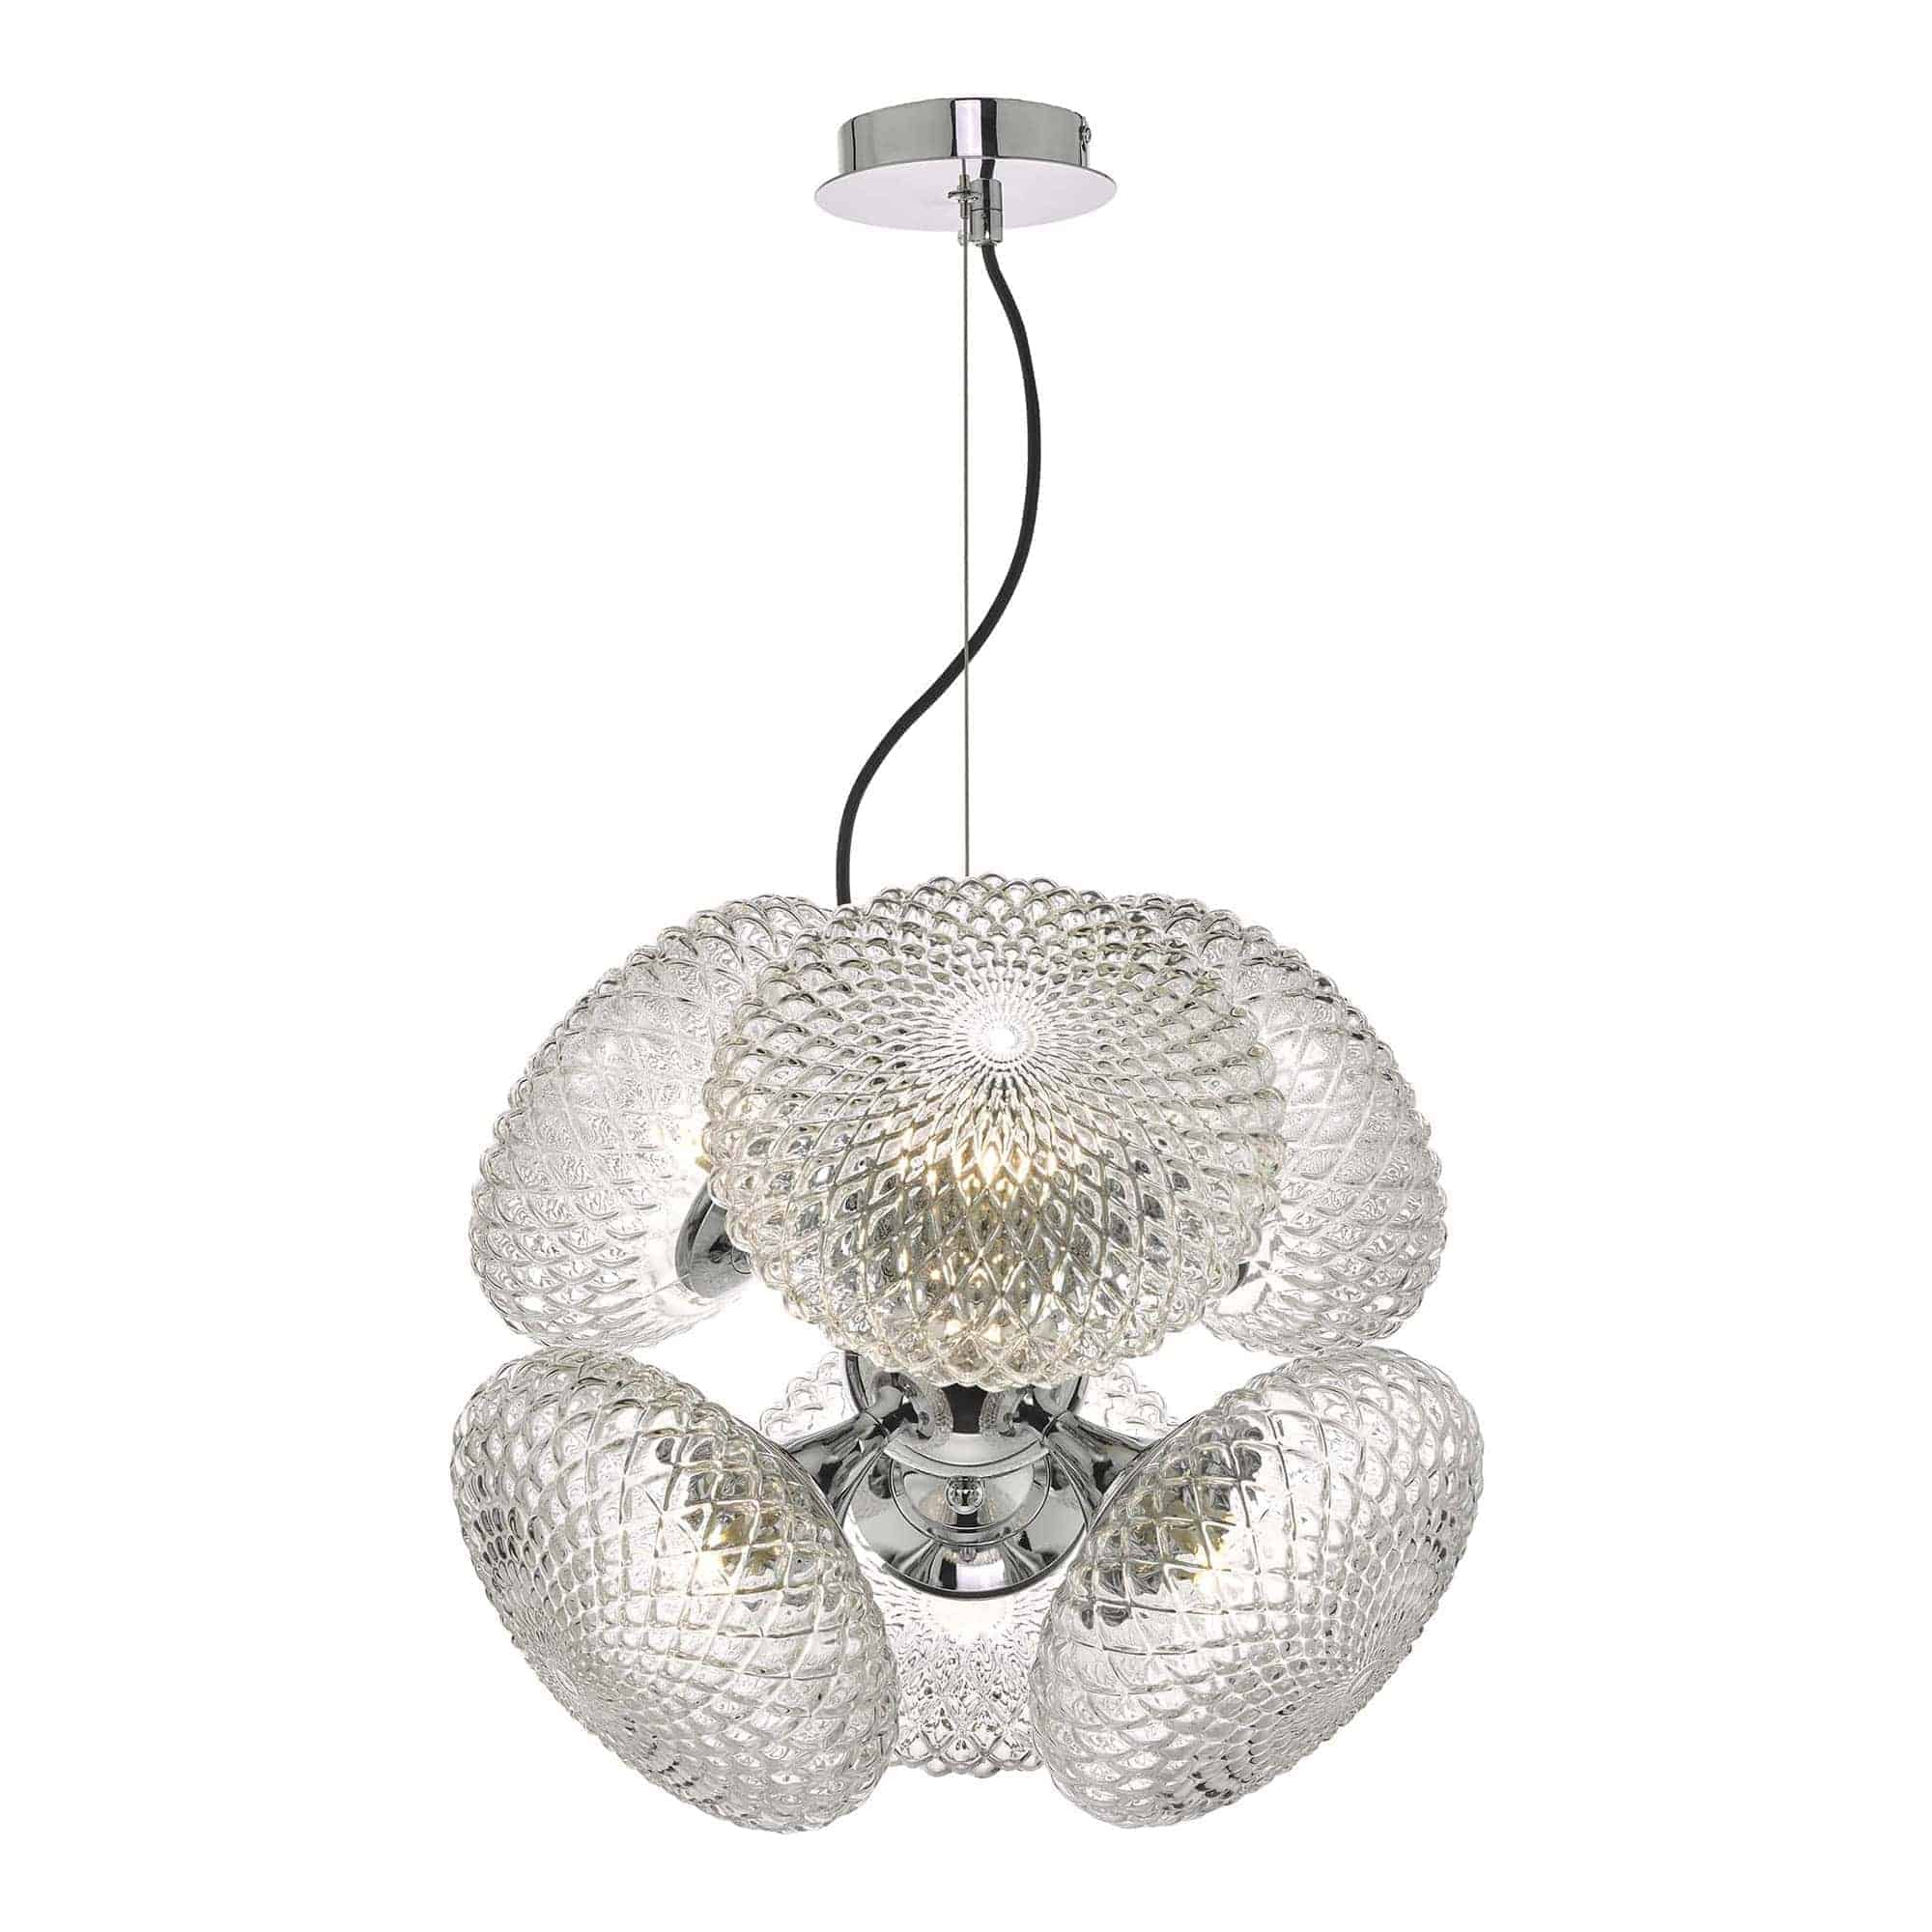 Dar BIB0650 Bibiana 6 Light Pendant Polished Chrome And Clear Glass